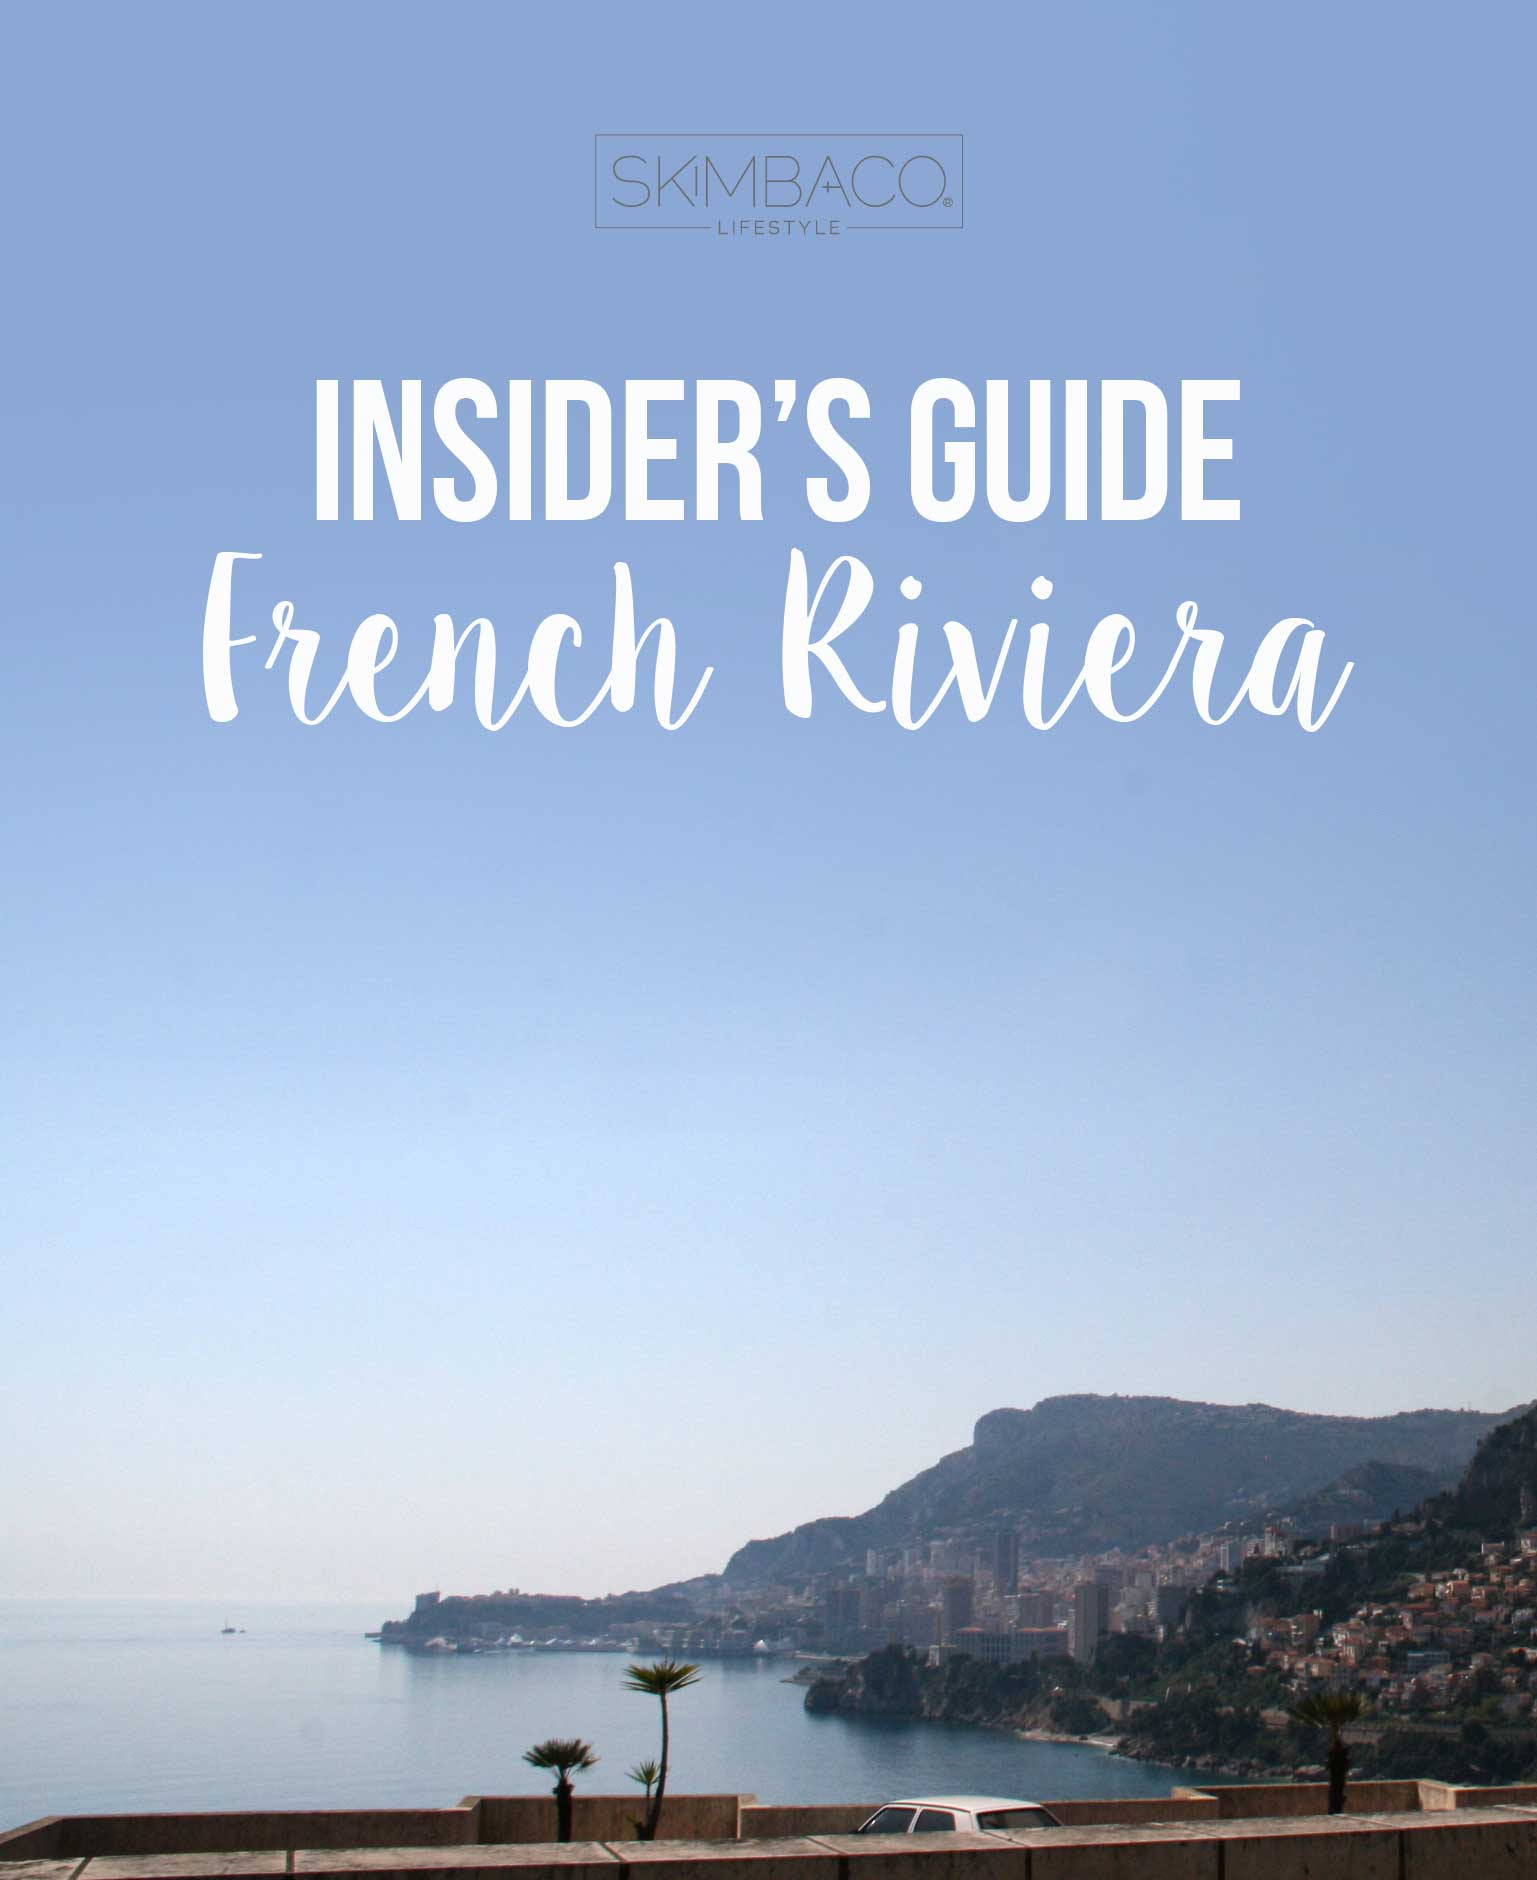 Insider's Guide to French Riviera